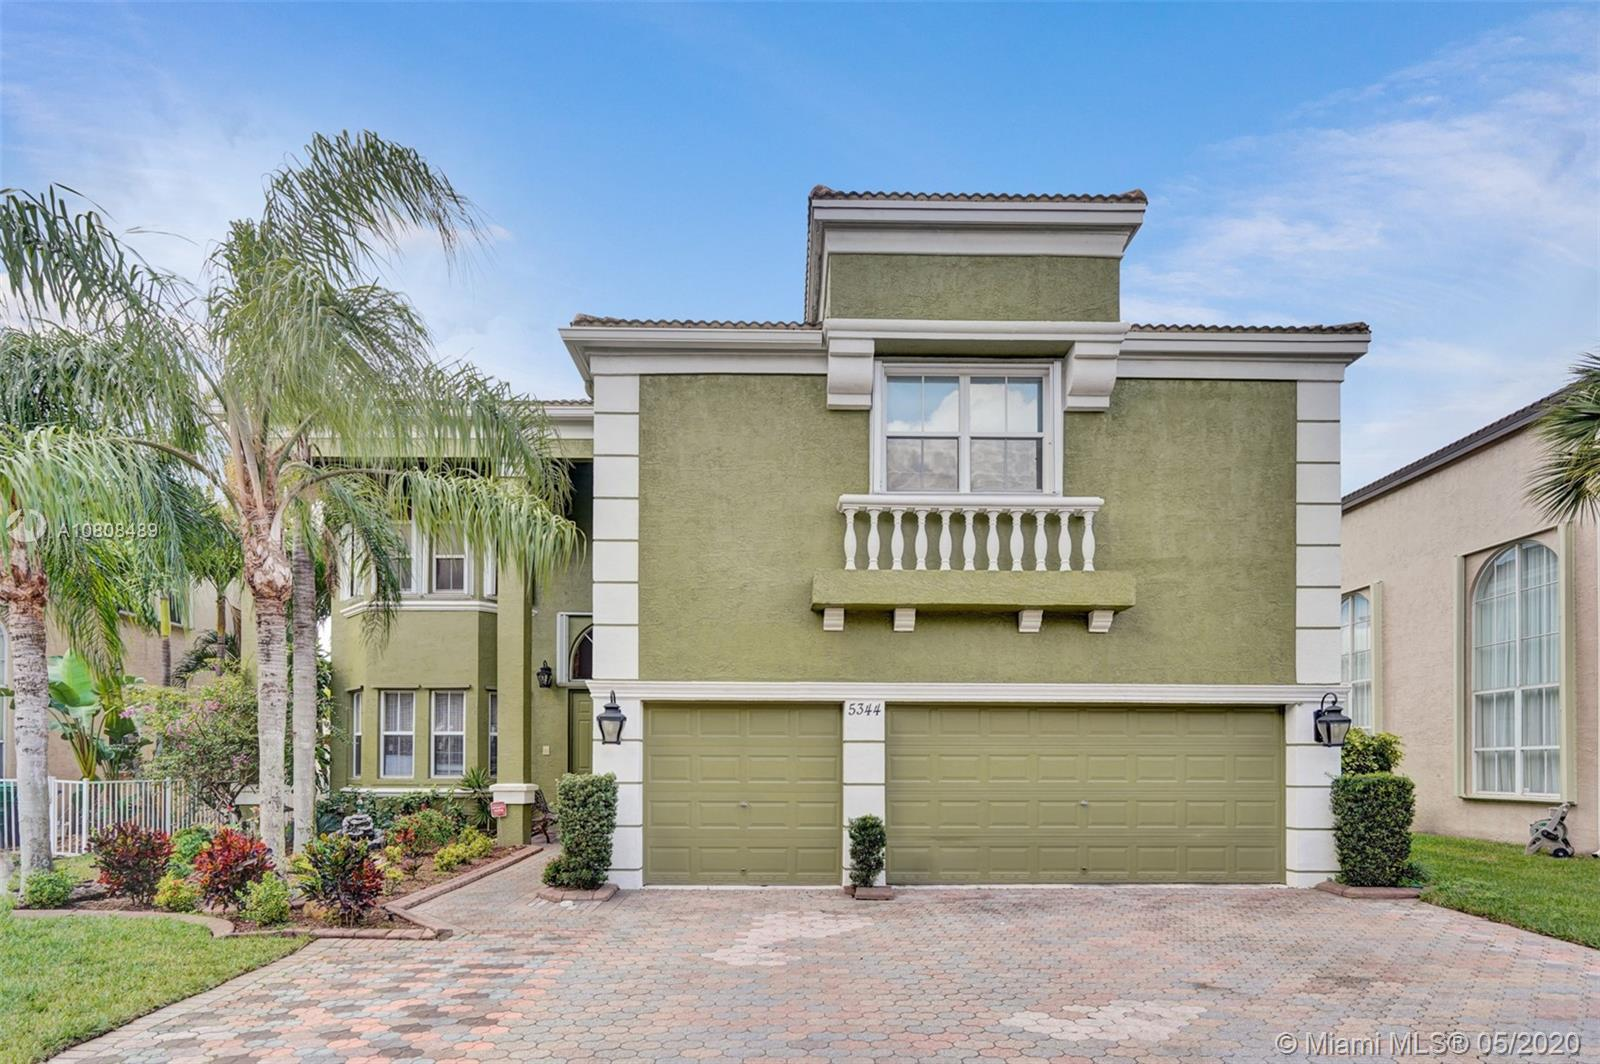 5344 SW 159th Ave, Miramar, Florida